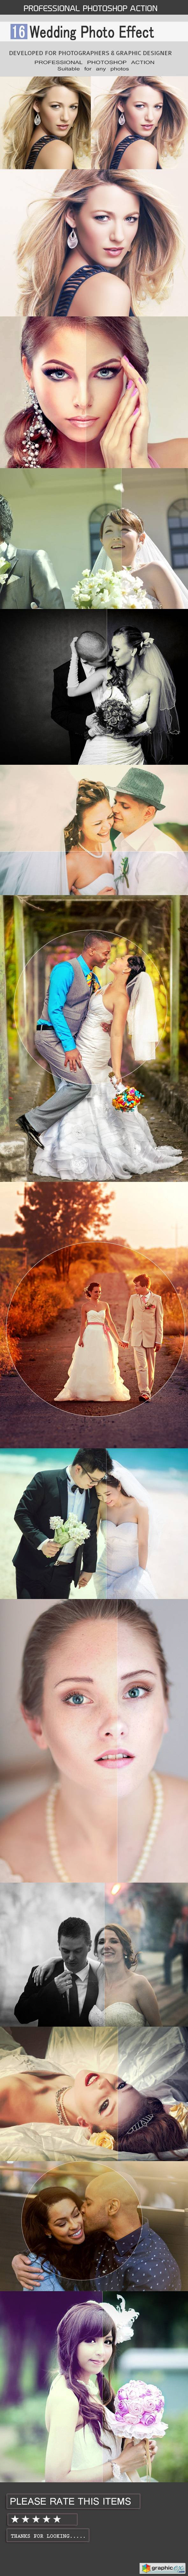 16 Wedding Photo Effect